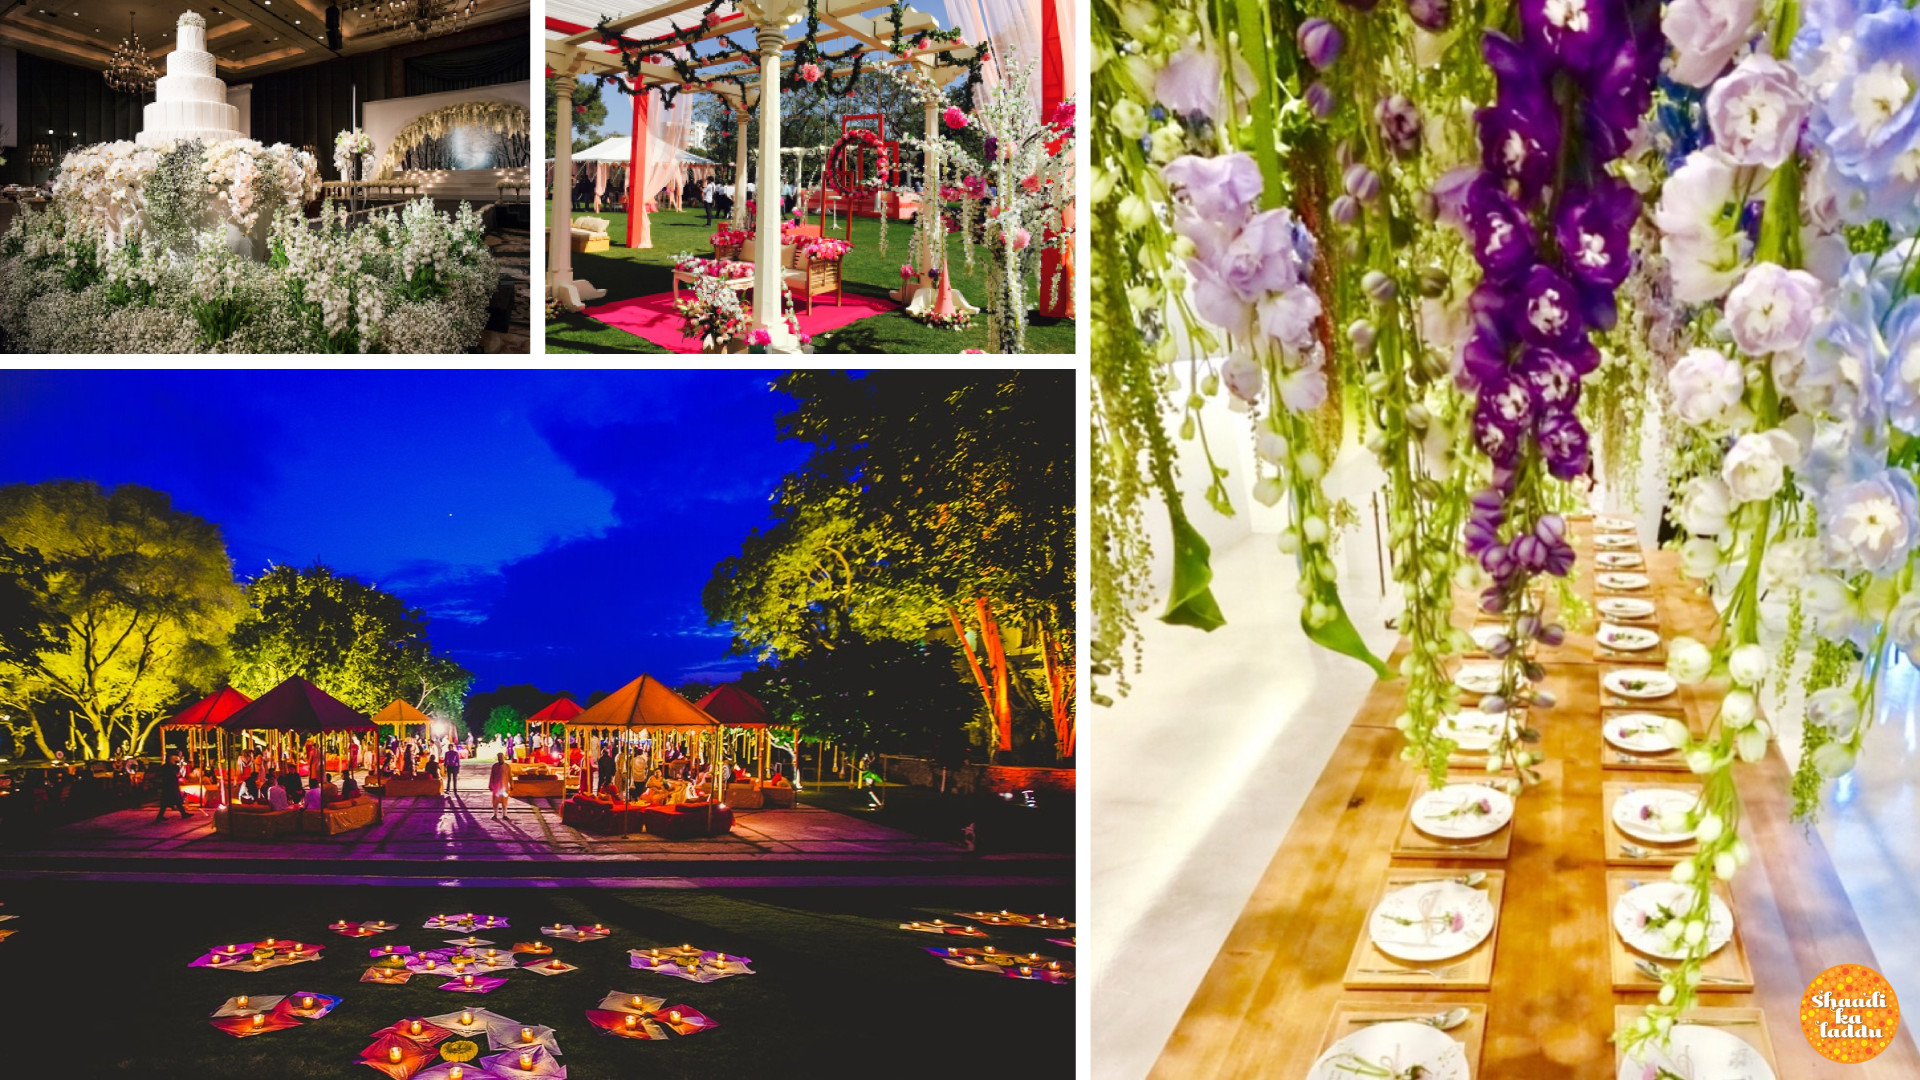 beautiful and colorful wedding decorations with help of different flowers and arrangements by wedding planner